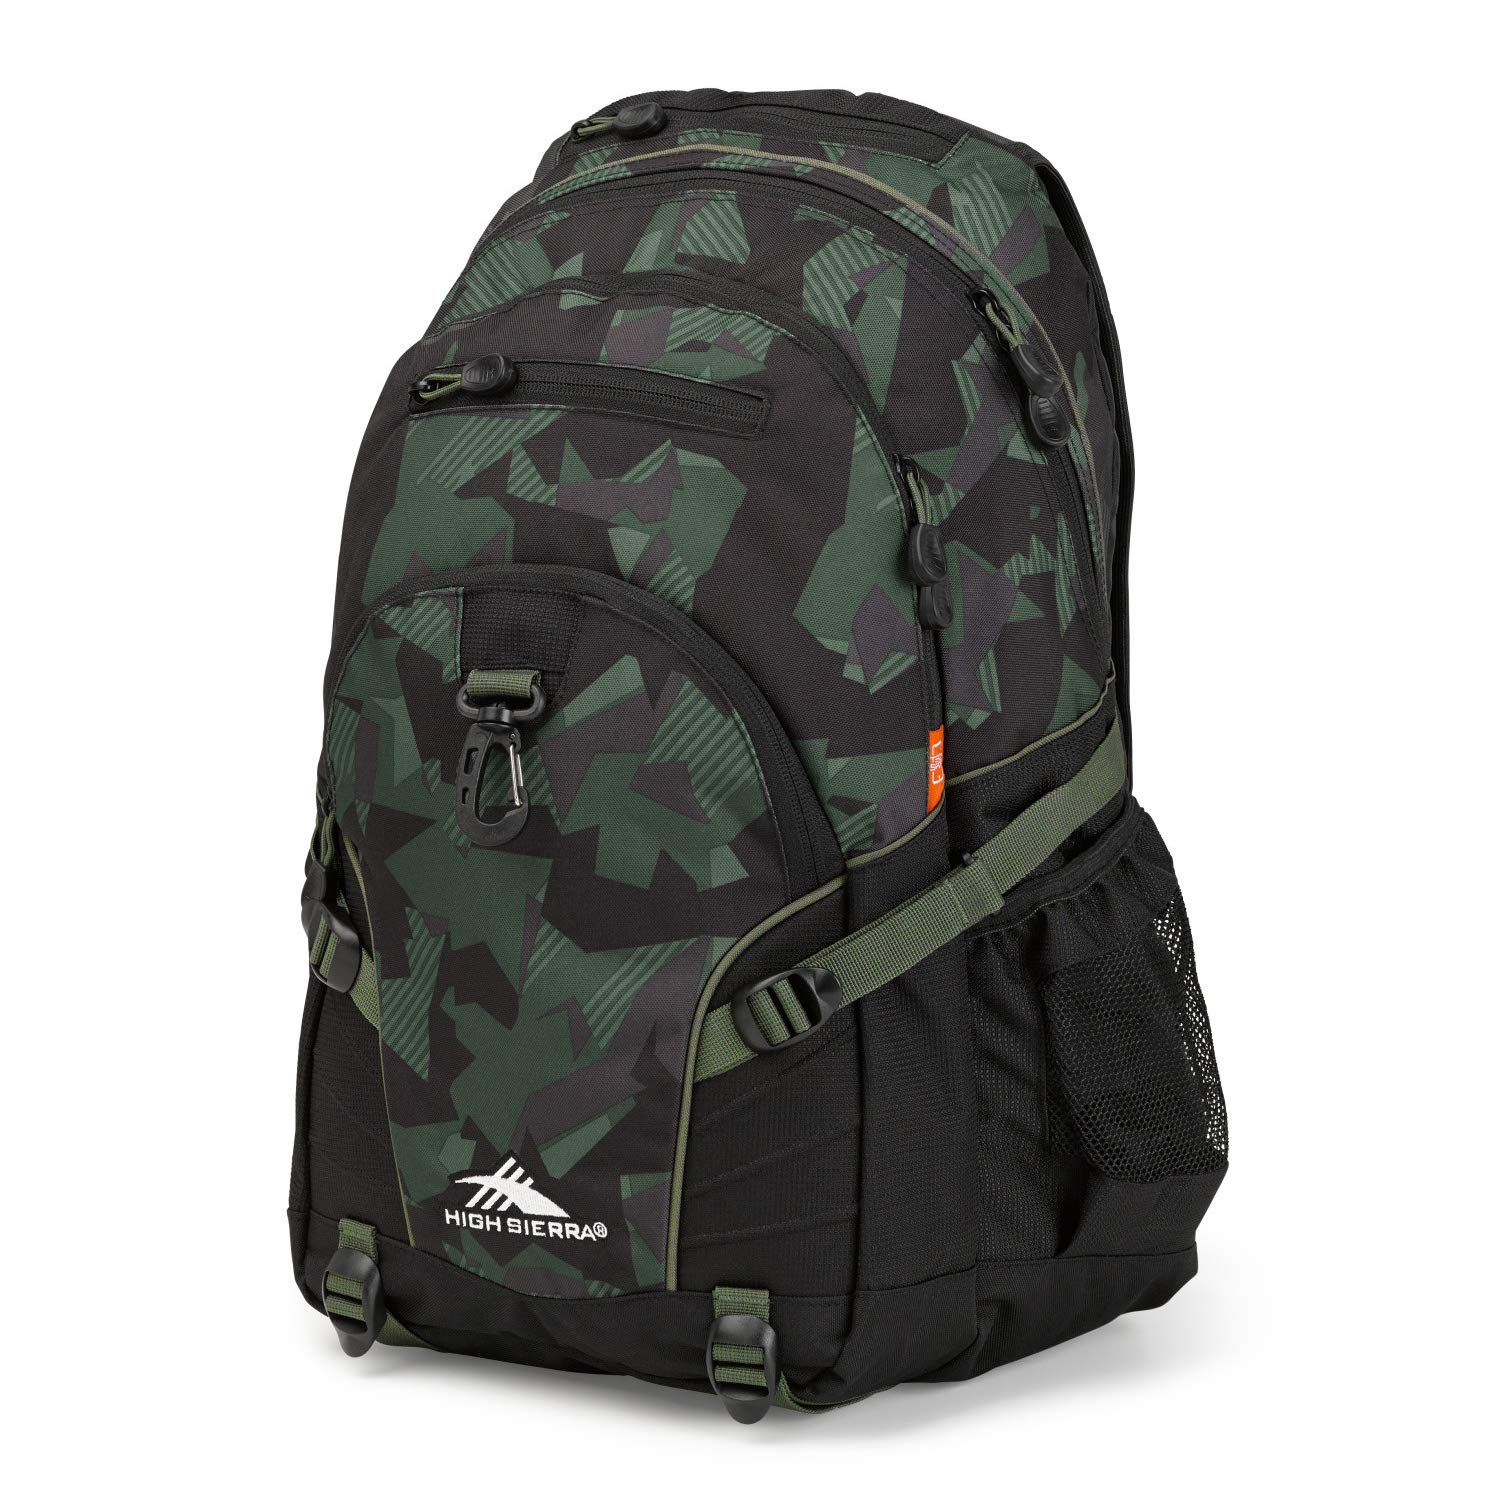 High Sierra Loop Backpack for Men and Women, Compact Bookbag Backpack for College Students or Business Professionals, Stylish Lunch Backpack, Lightweight Unisex Backpack for School, Office, or Travel by High Sierra